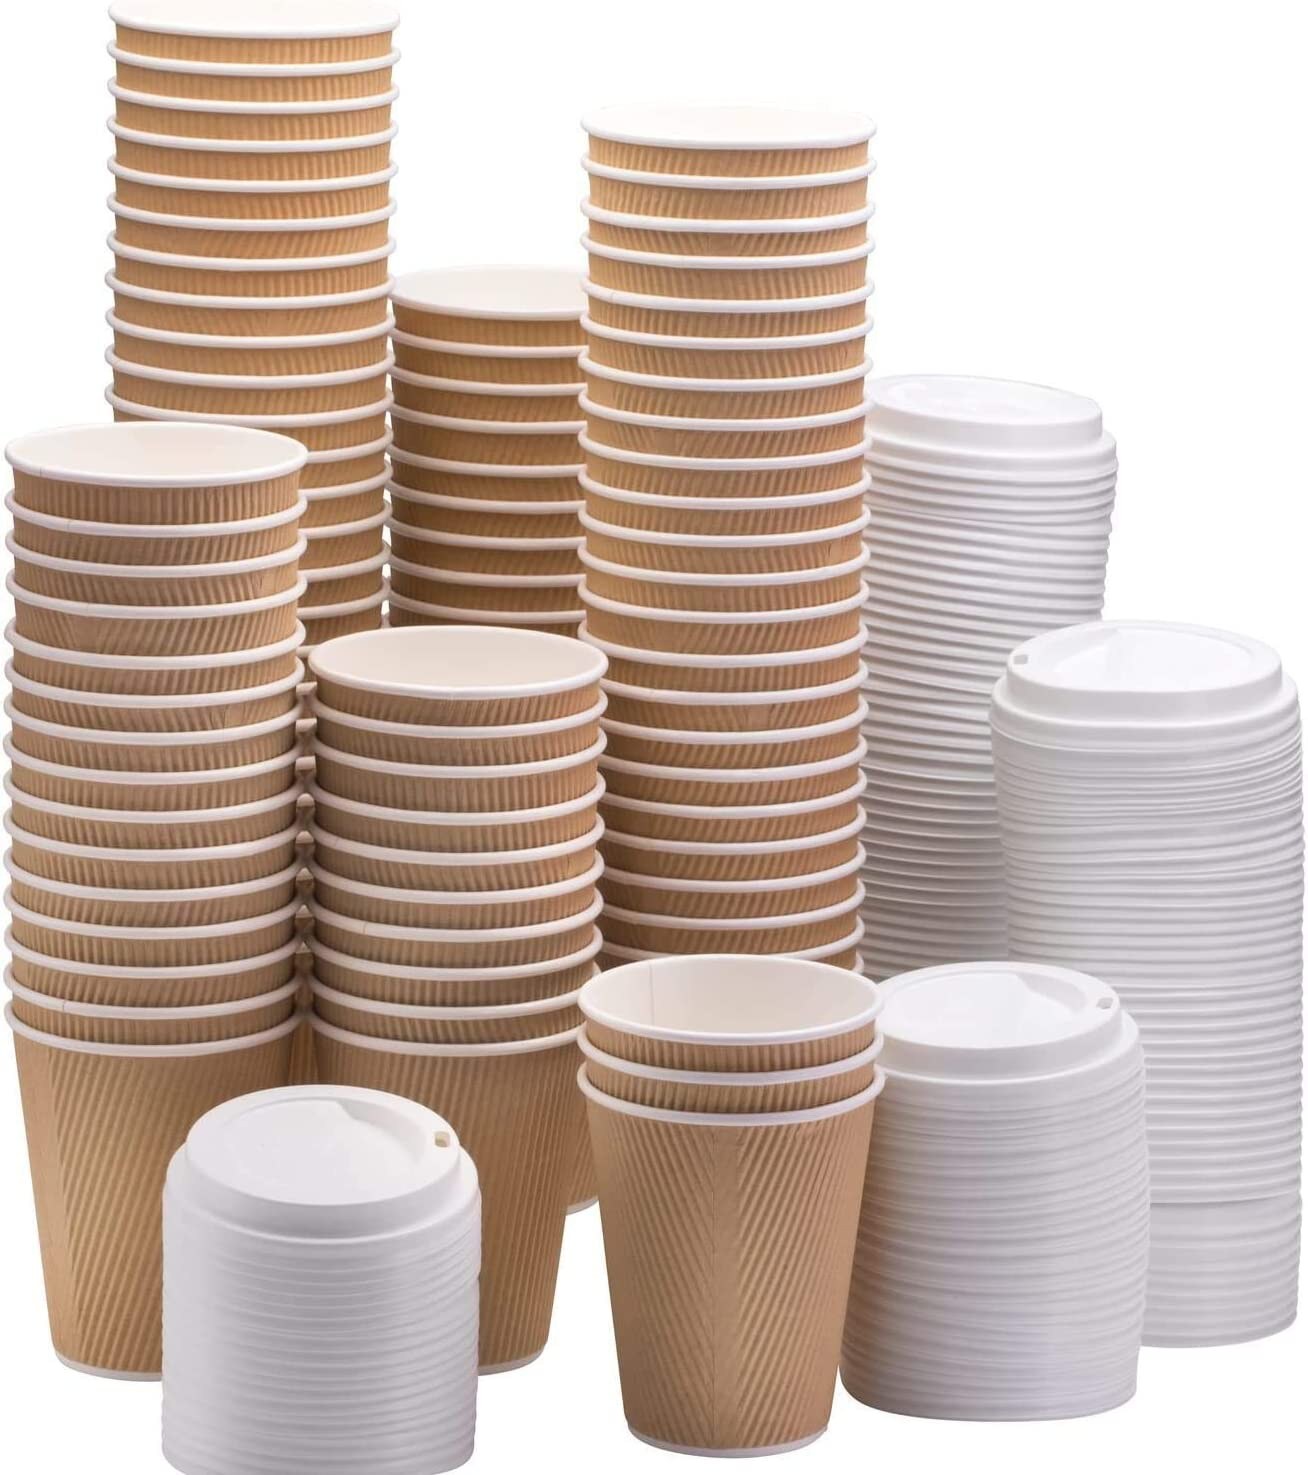 NYHI Set of 150 Brown Disposable Paper Cups with White Lids (6 oz.) | Ripple Insulated Kraft for Hot Drinks - Tea & Coffee | Triple Layer Design | Recyclable, Durable Paper